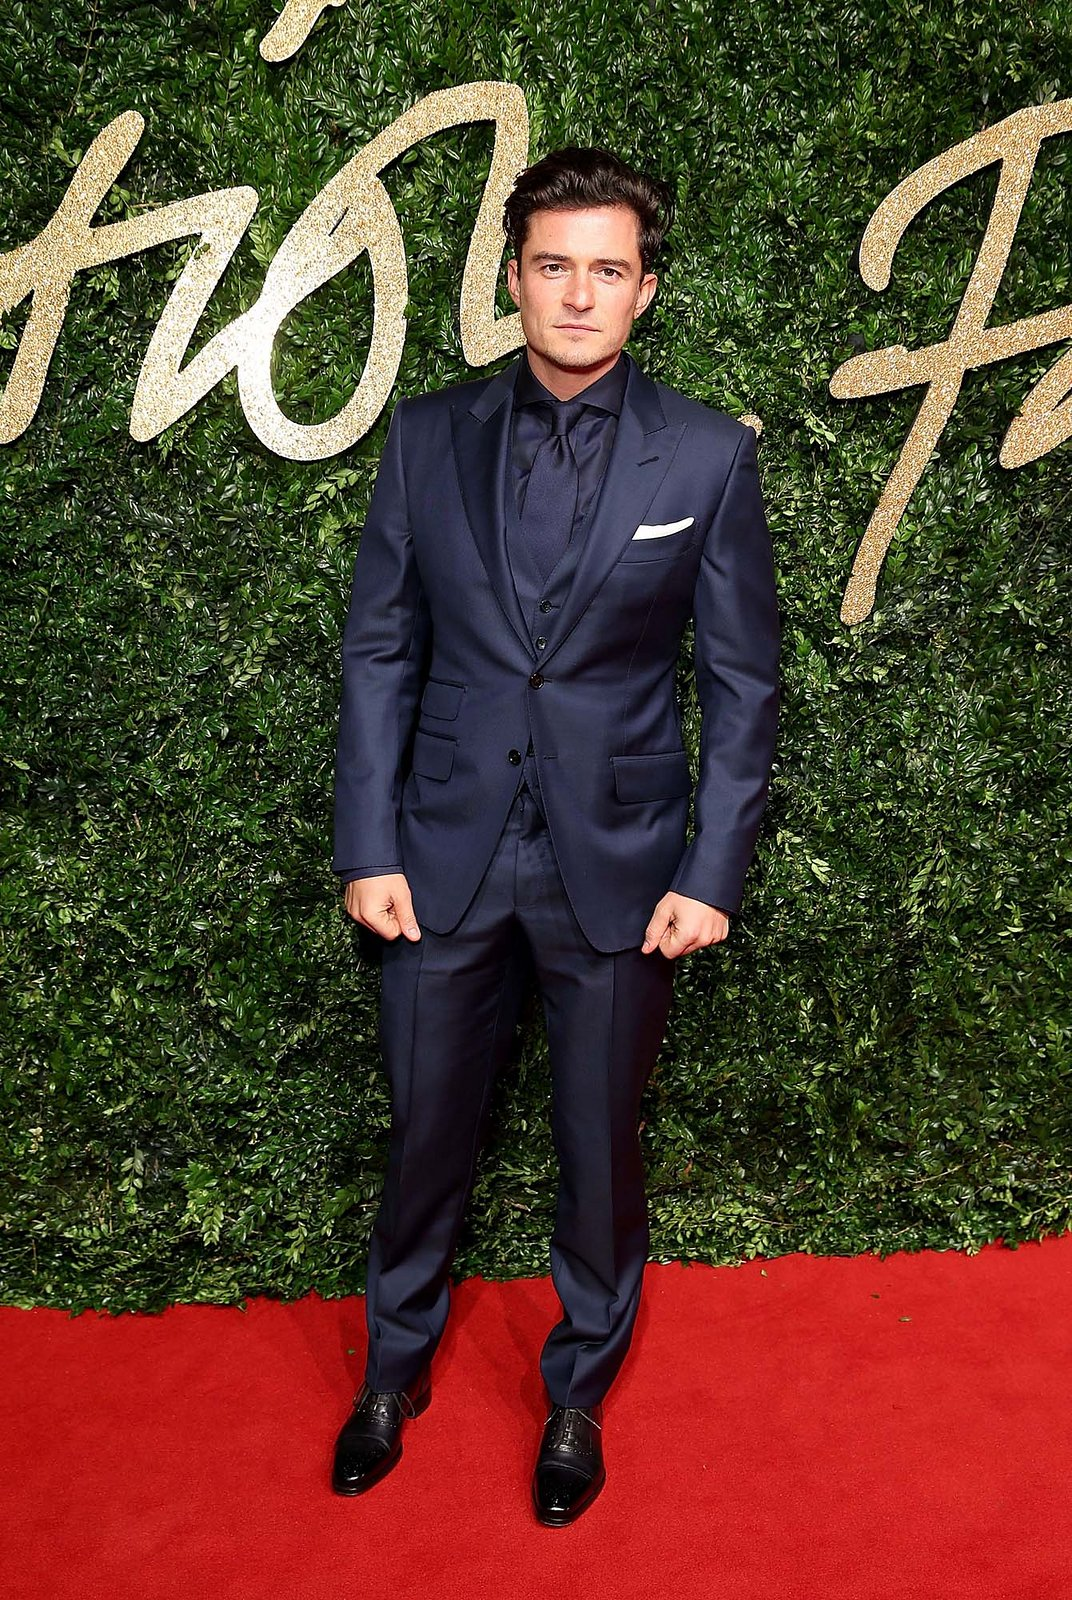 Orlando-Bloom-attends-the-British-Fashion-Awards-2015-in-partnership-with-Swarovski-Mike-Marsland-British-Fashion-Council